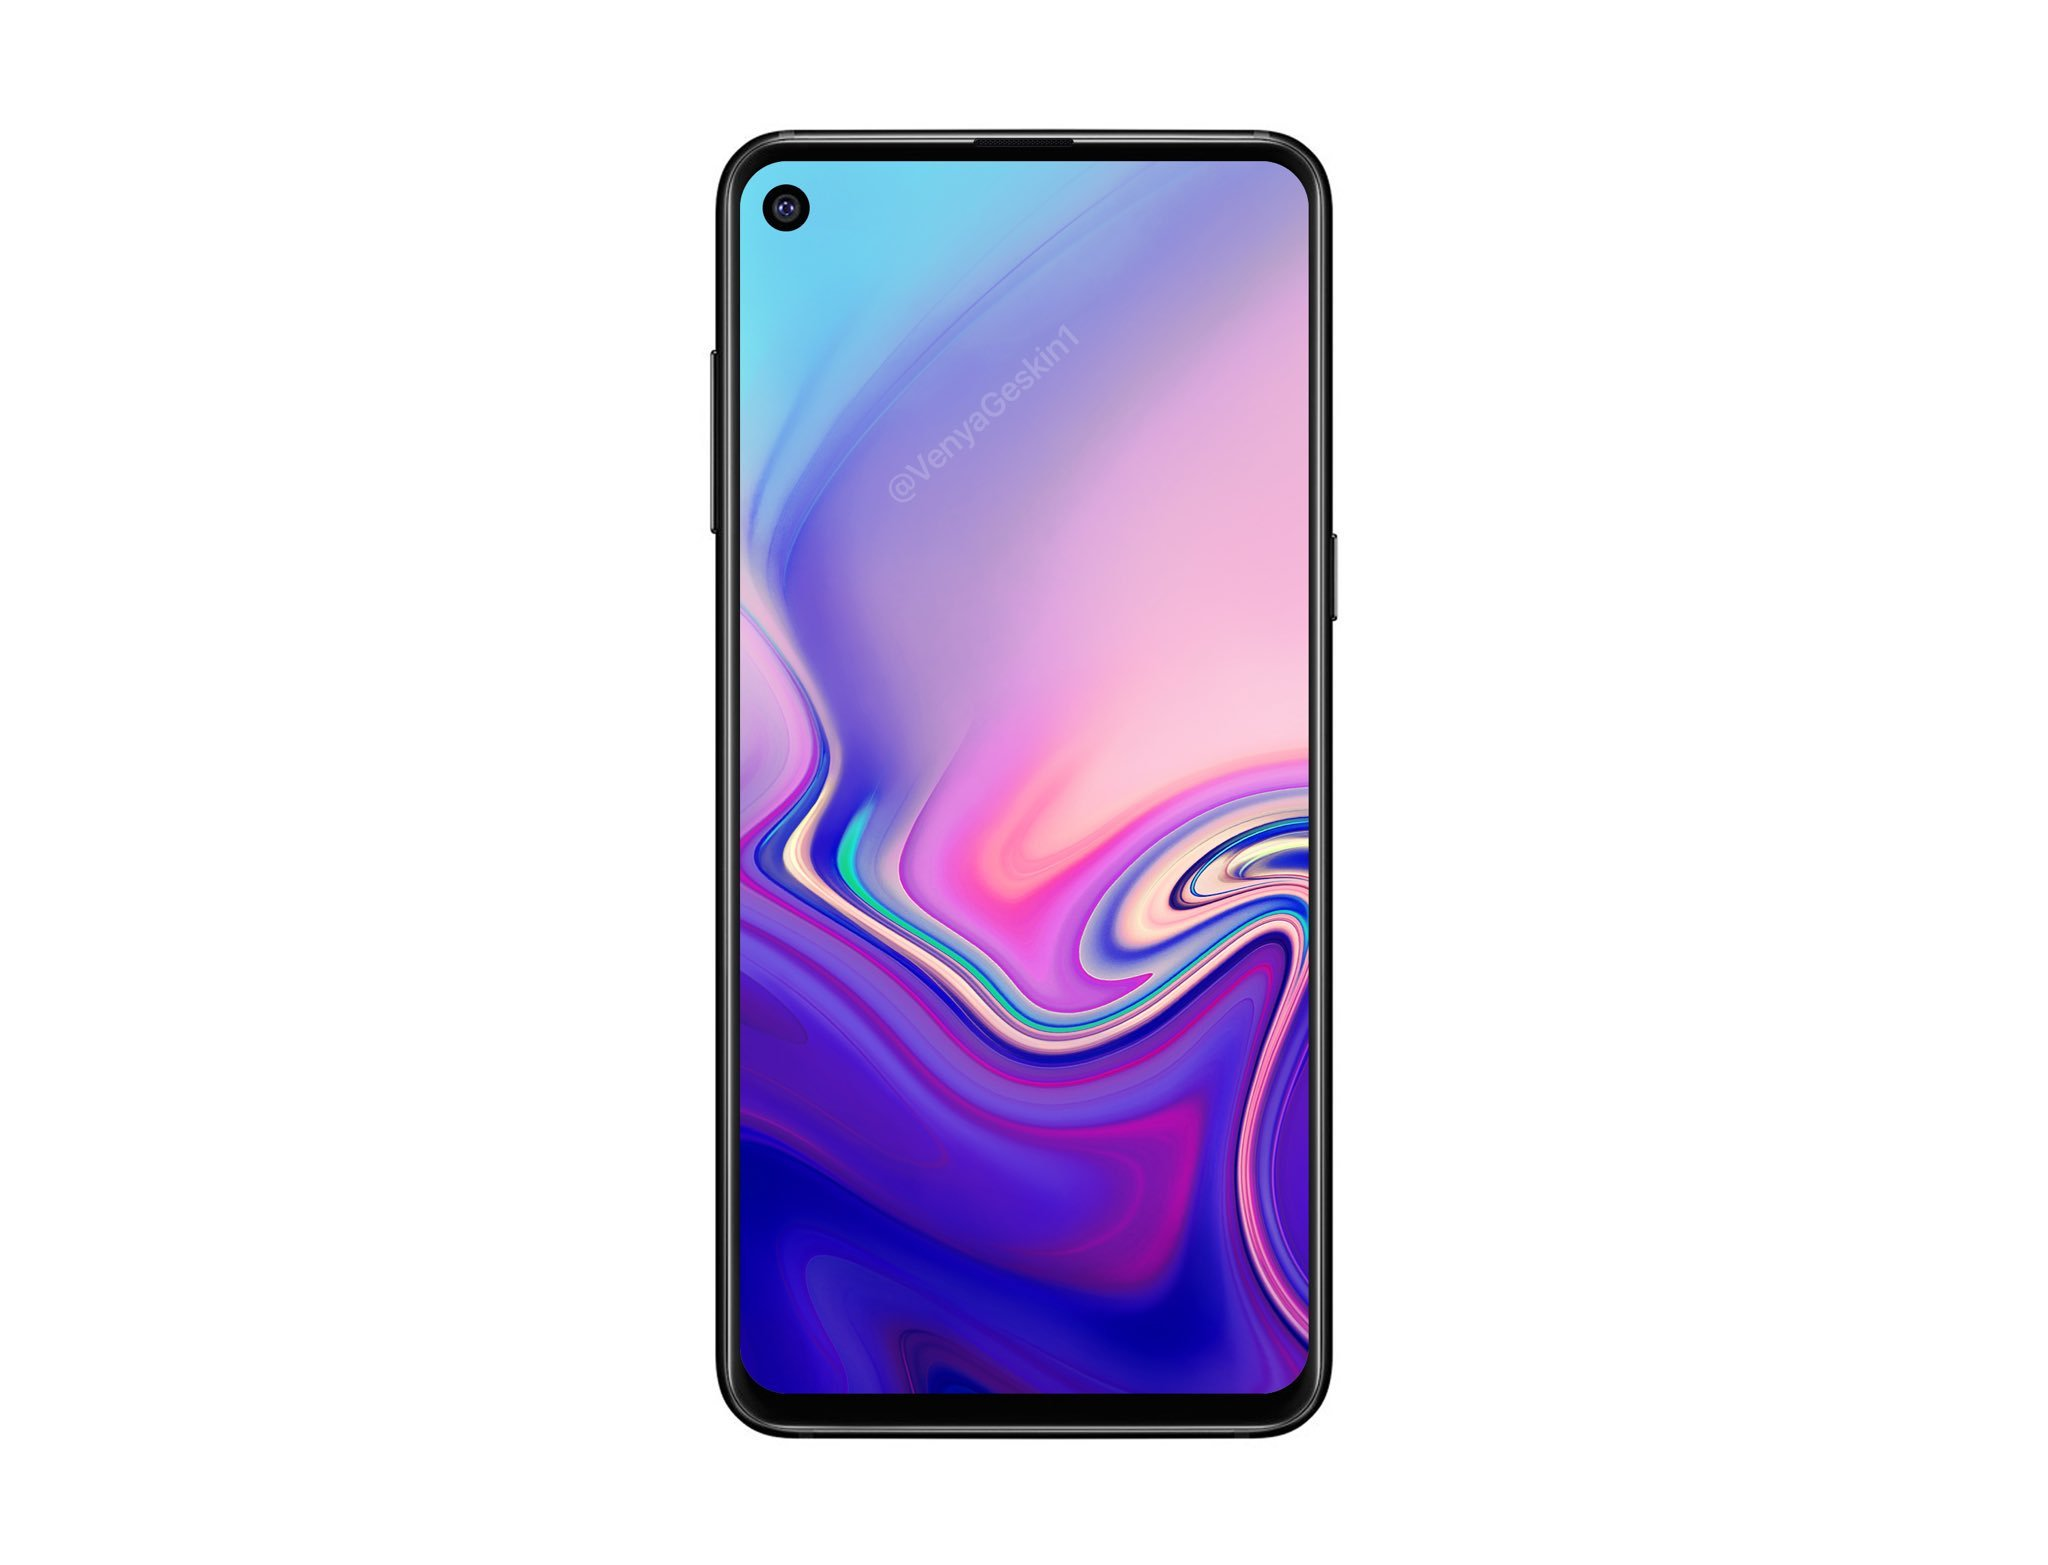 Samsung Galaxy A8s : voici comment l'interface s'adapte à l'écran percé